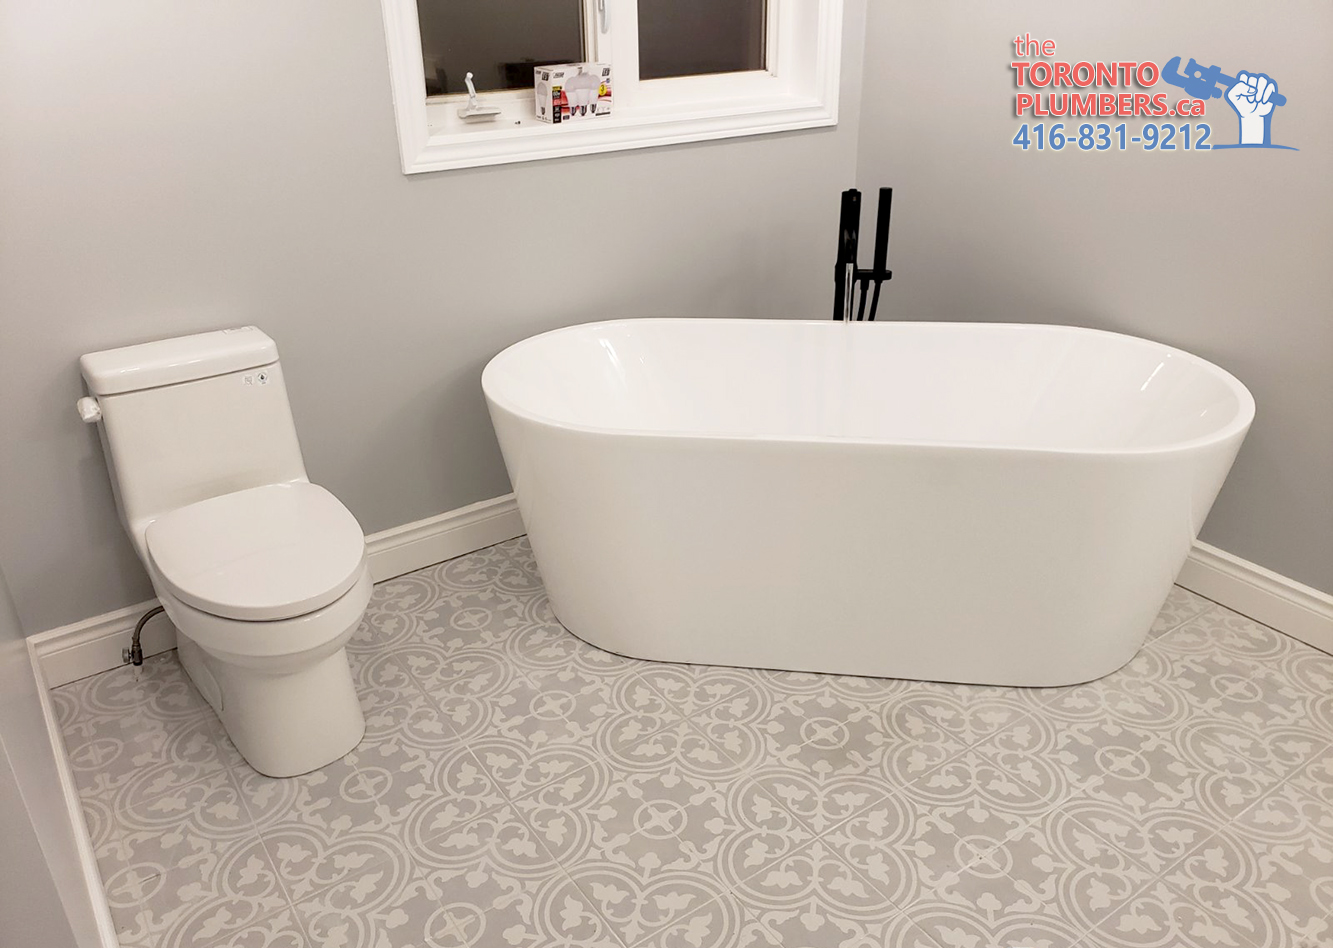 Modern tub and toilet